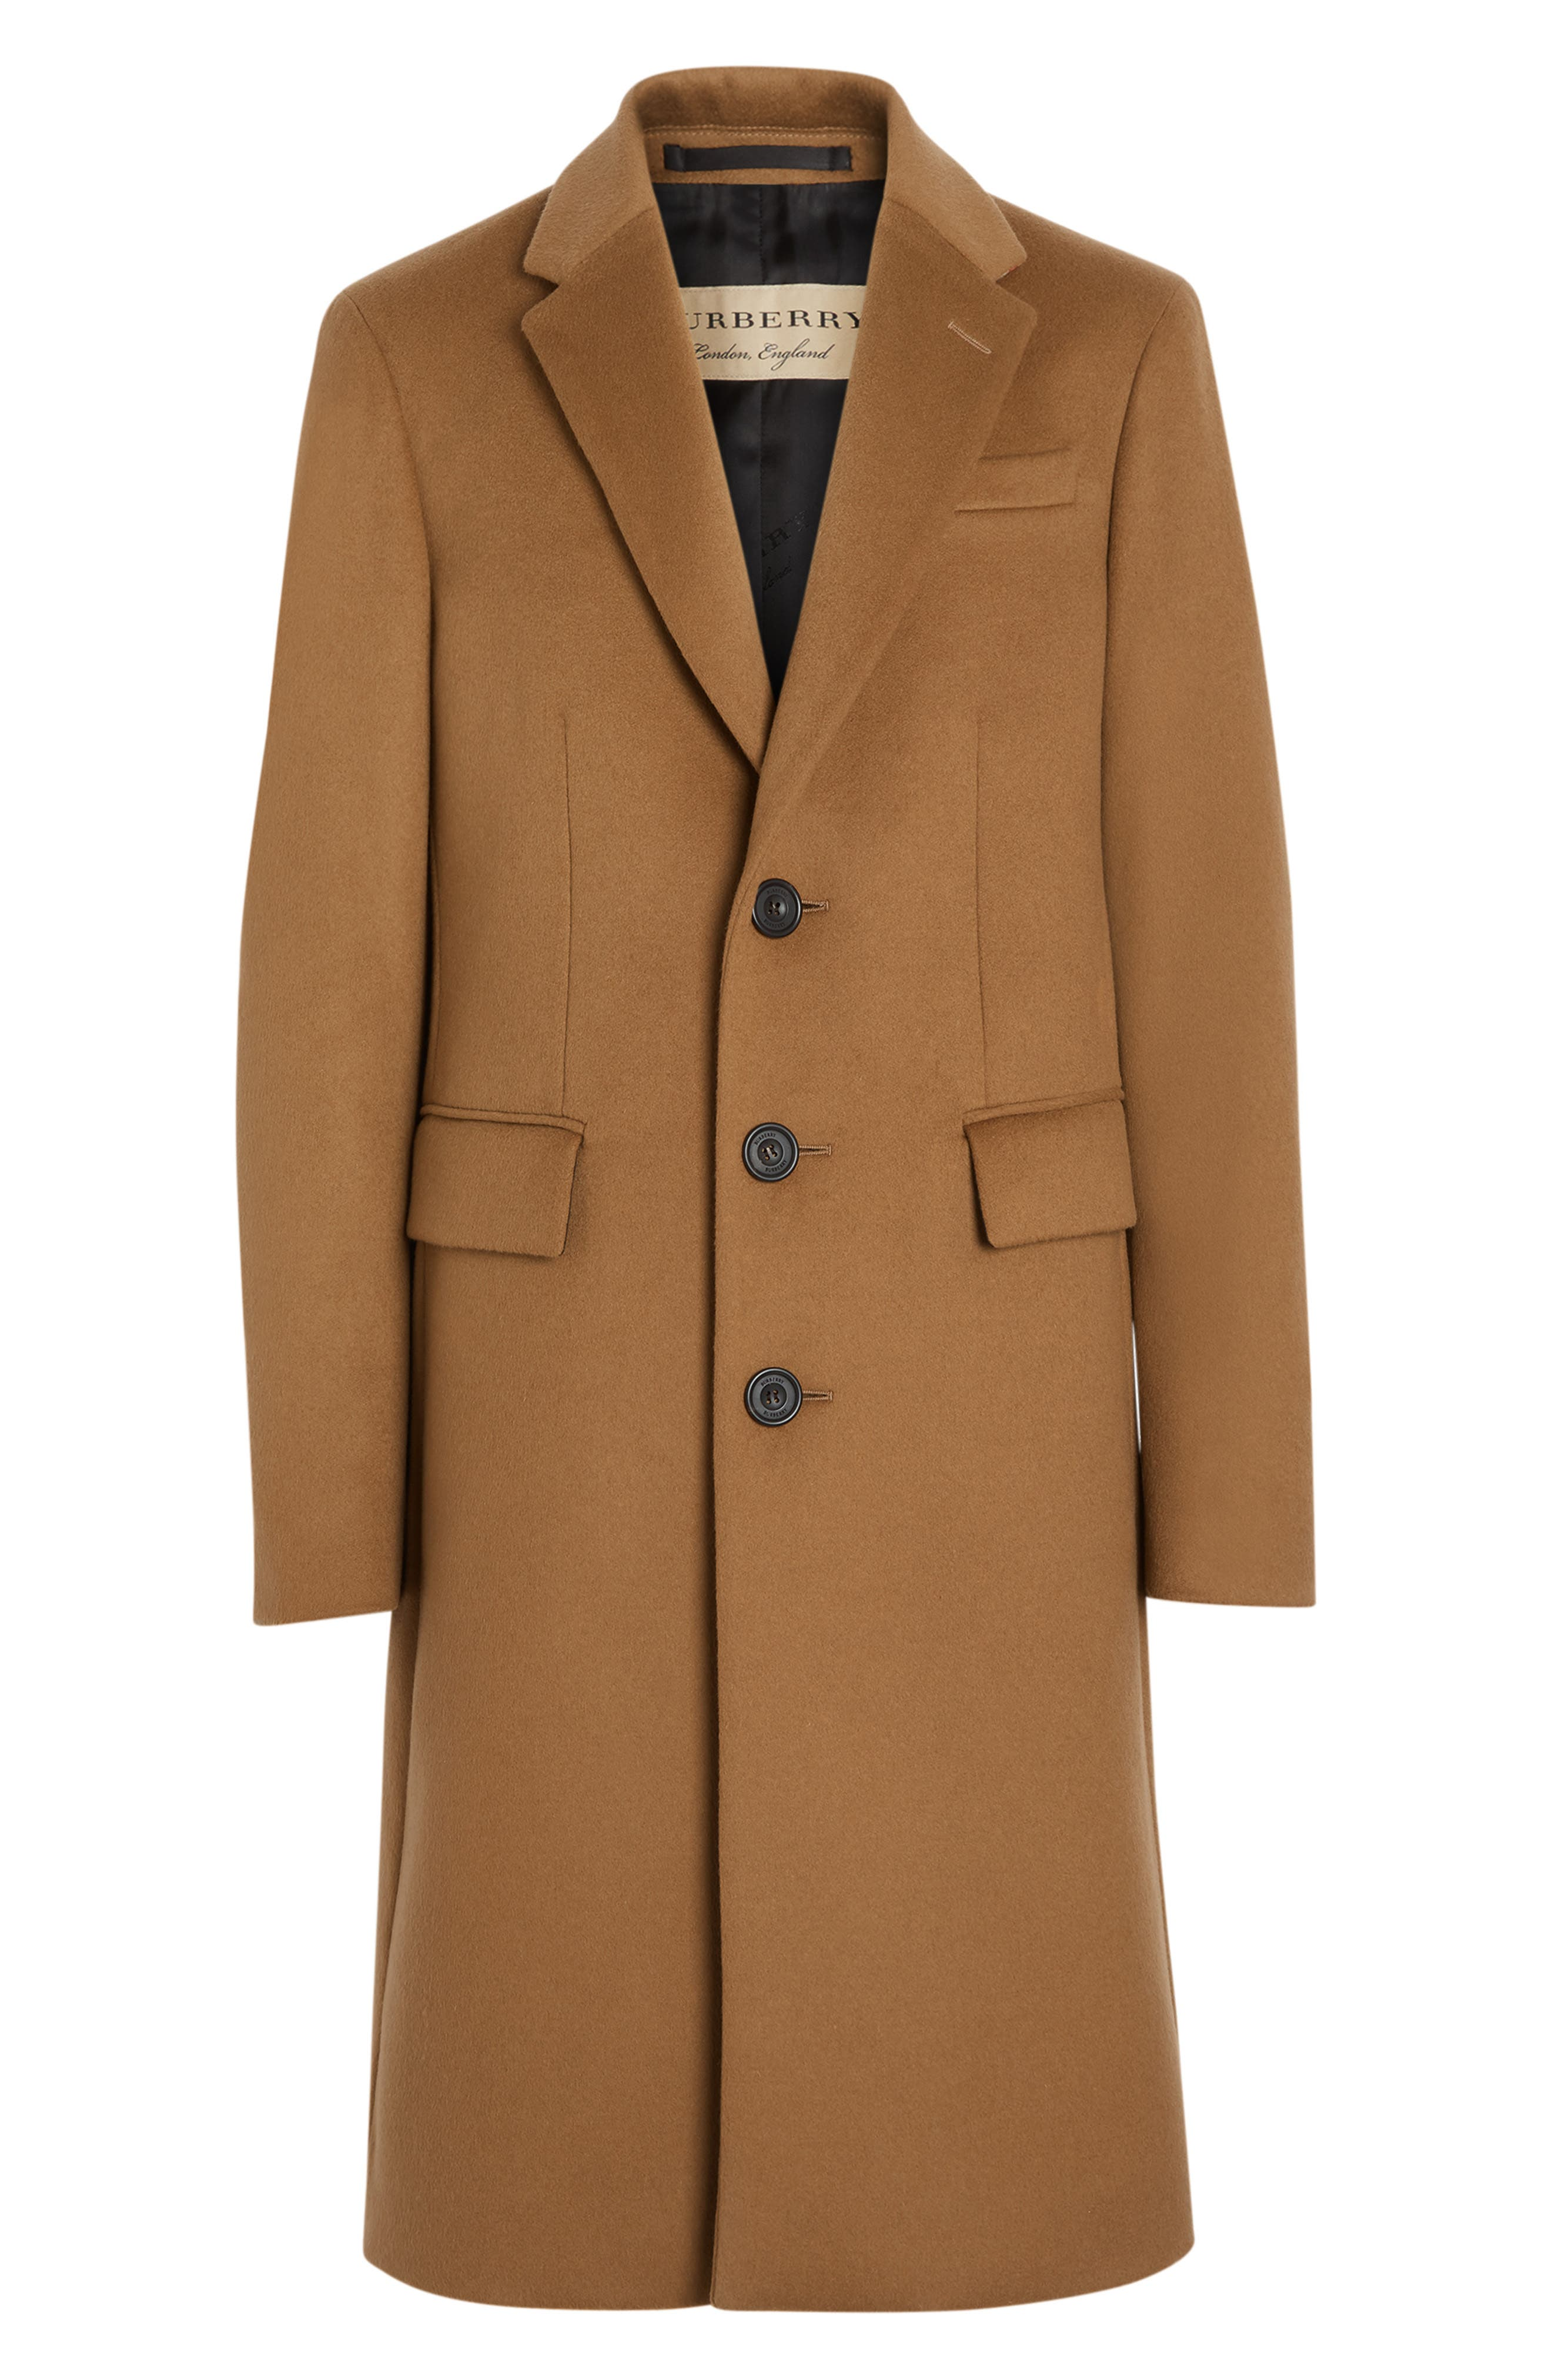 Halesowen Wool and Cashmere Overcoat,                             Alternate thumbnail 5, color,                             DARK CAMEL